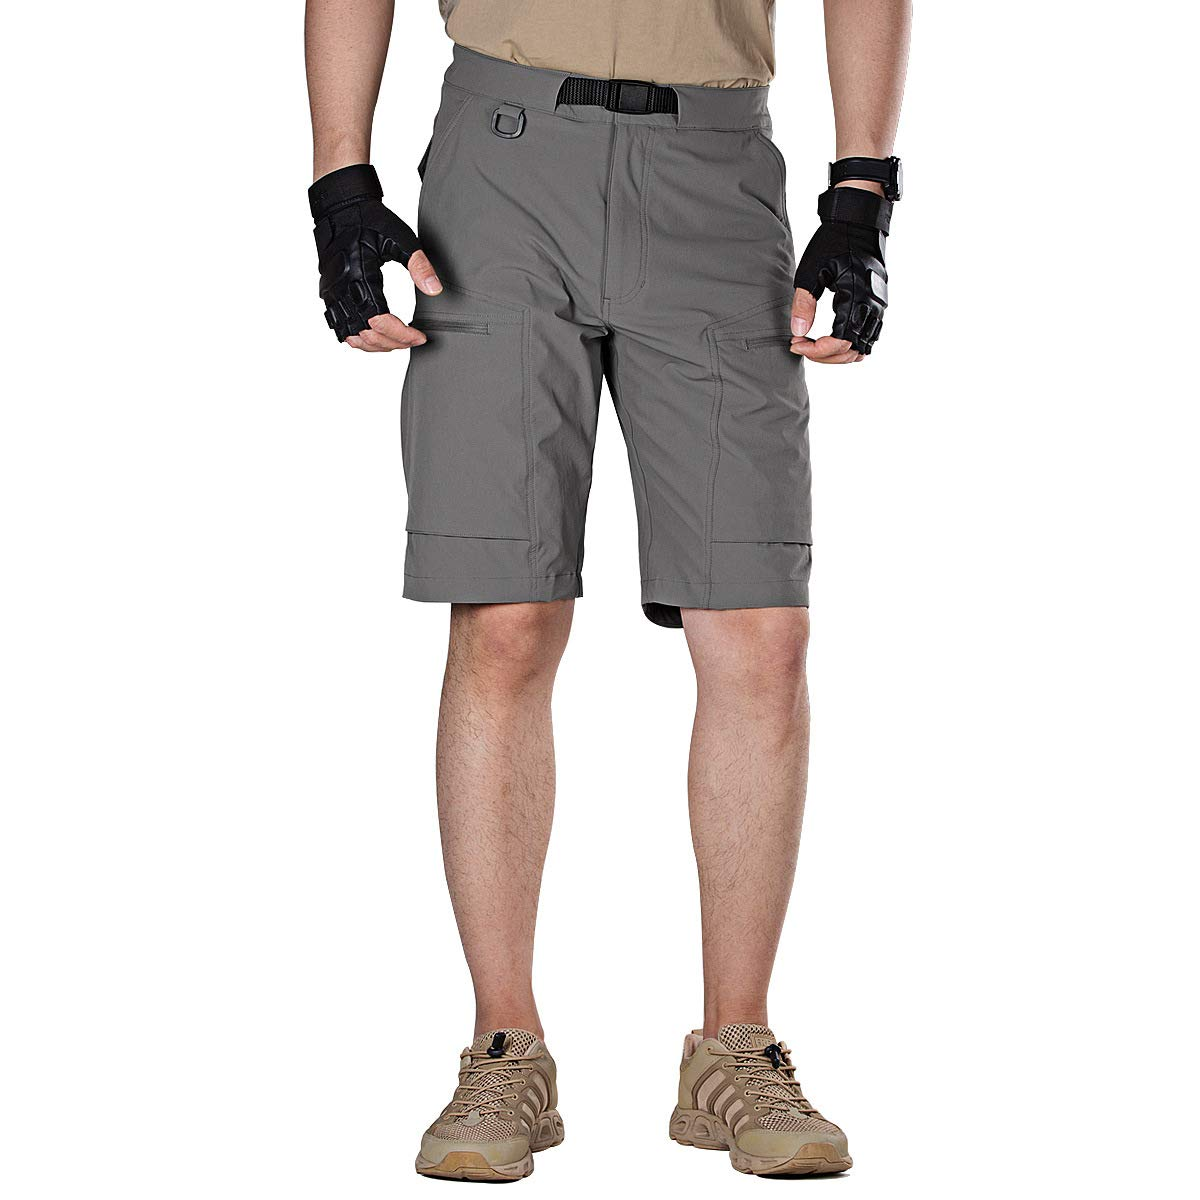 FREE SOLDIER Breathable Lightweight Tactical